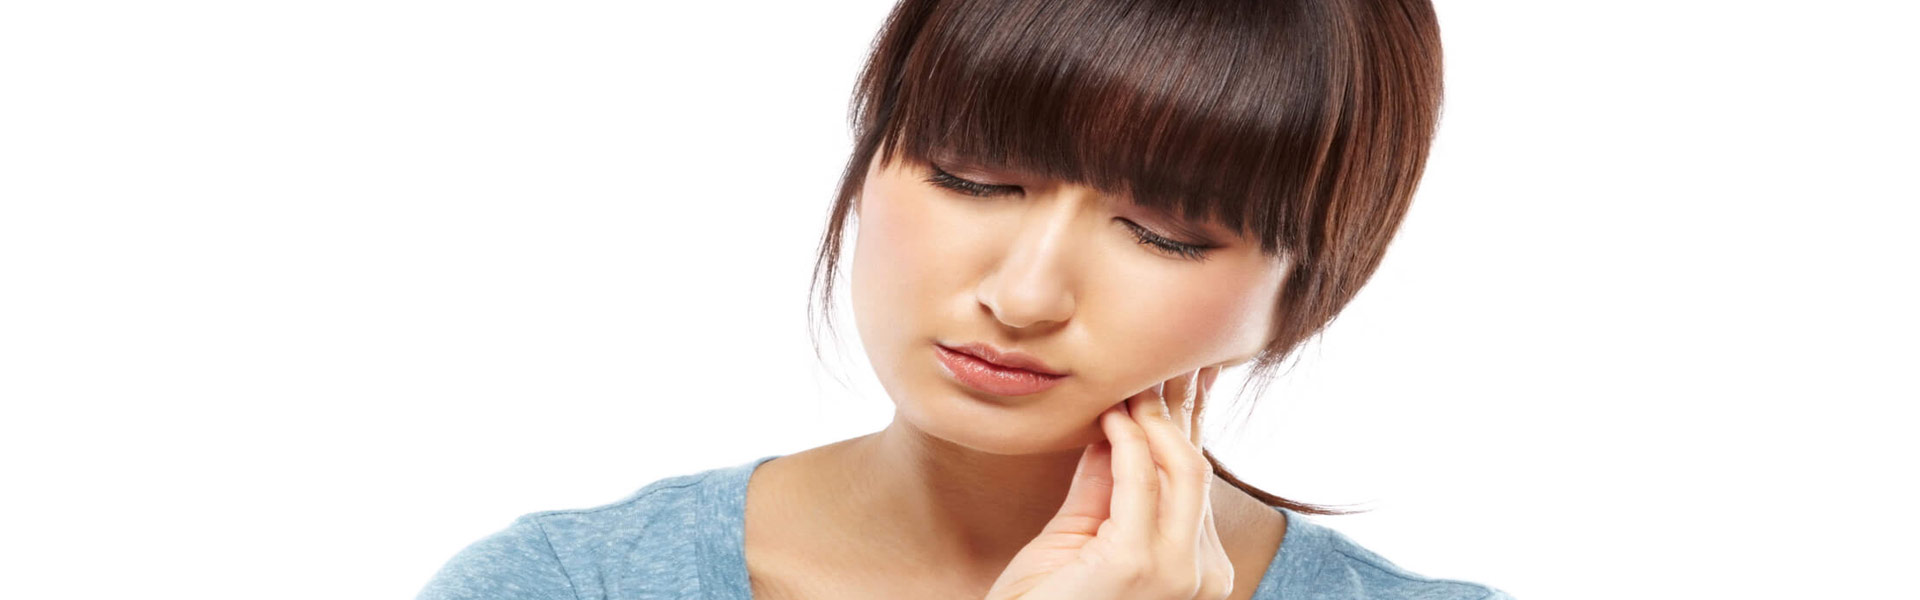 Tmj Therapy in Suffern